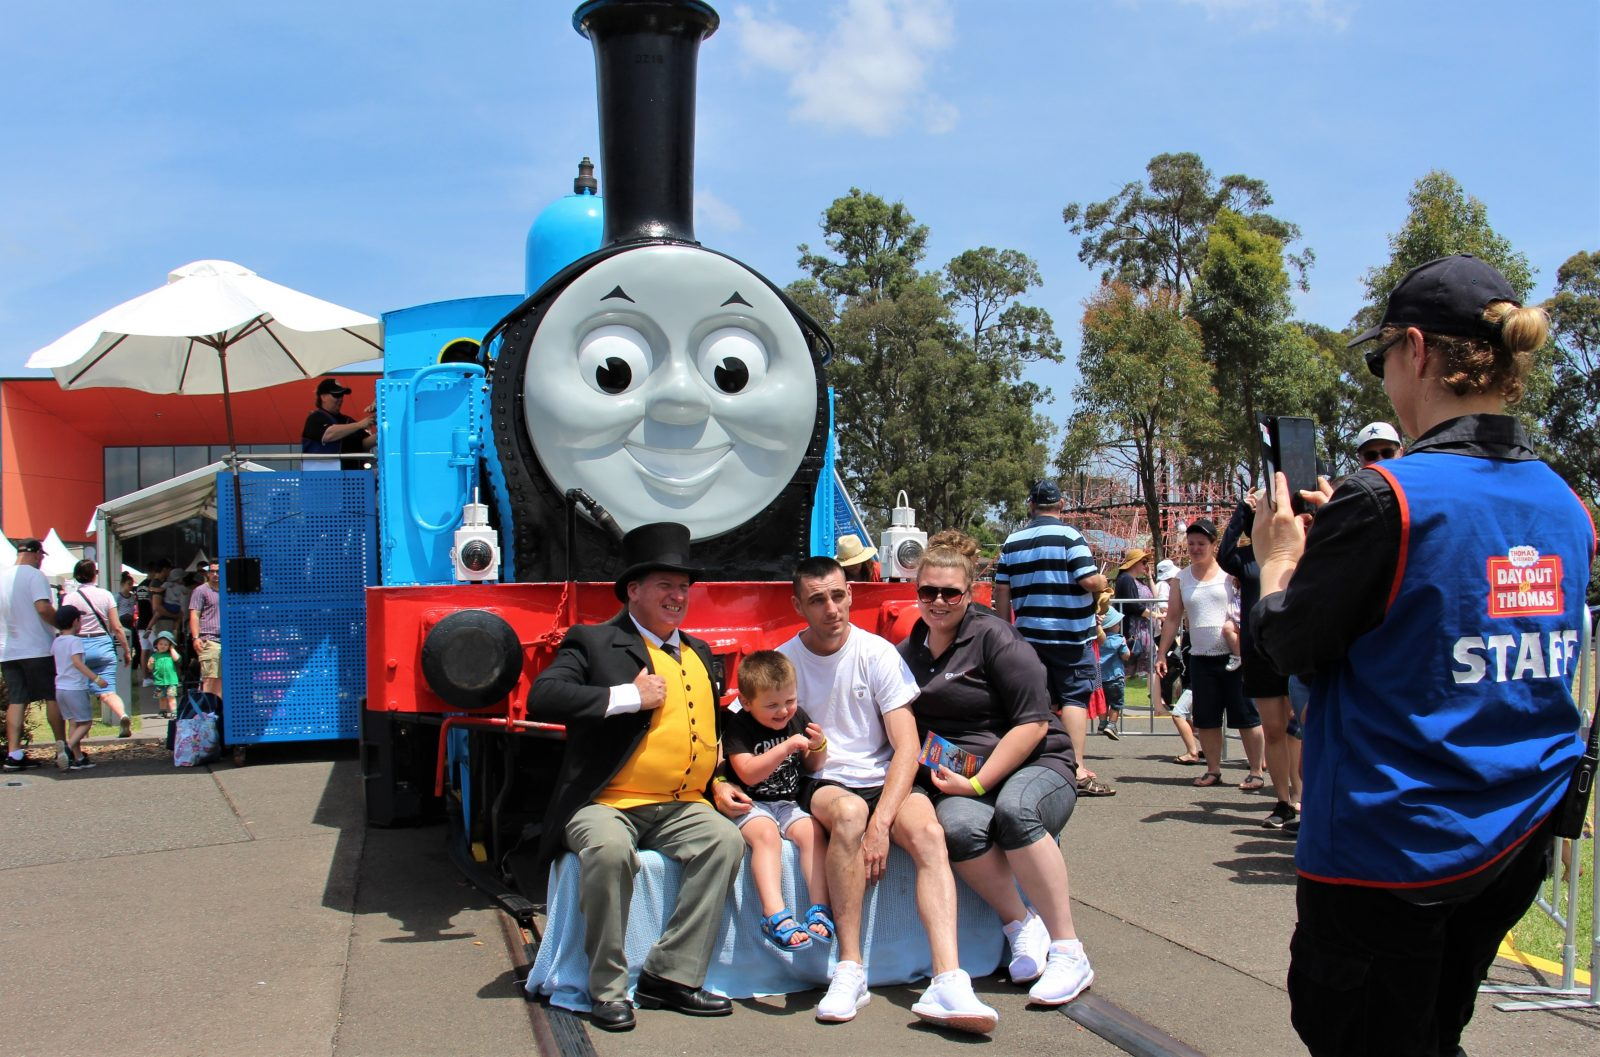 Meet Thomas and the Fat Controller